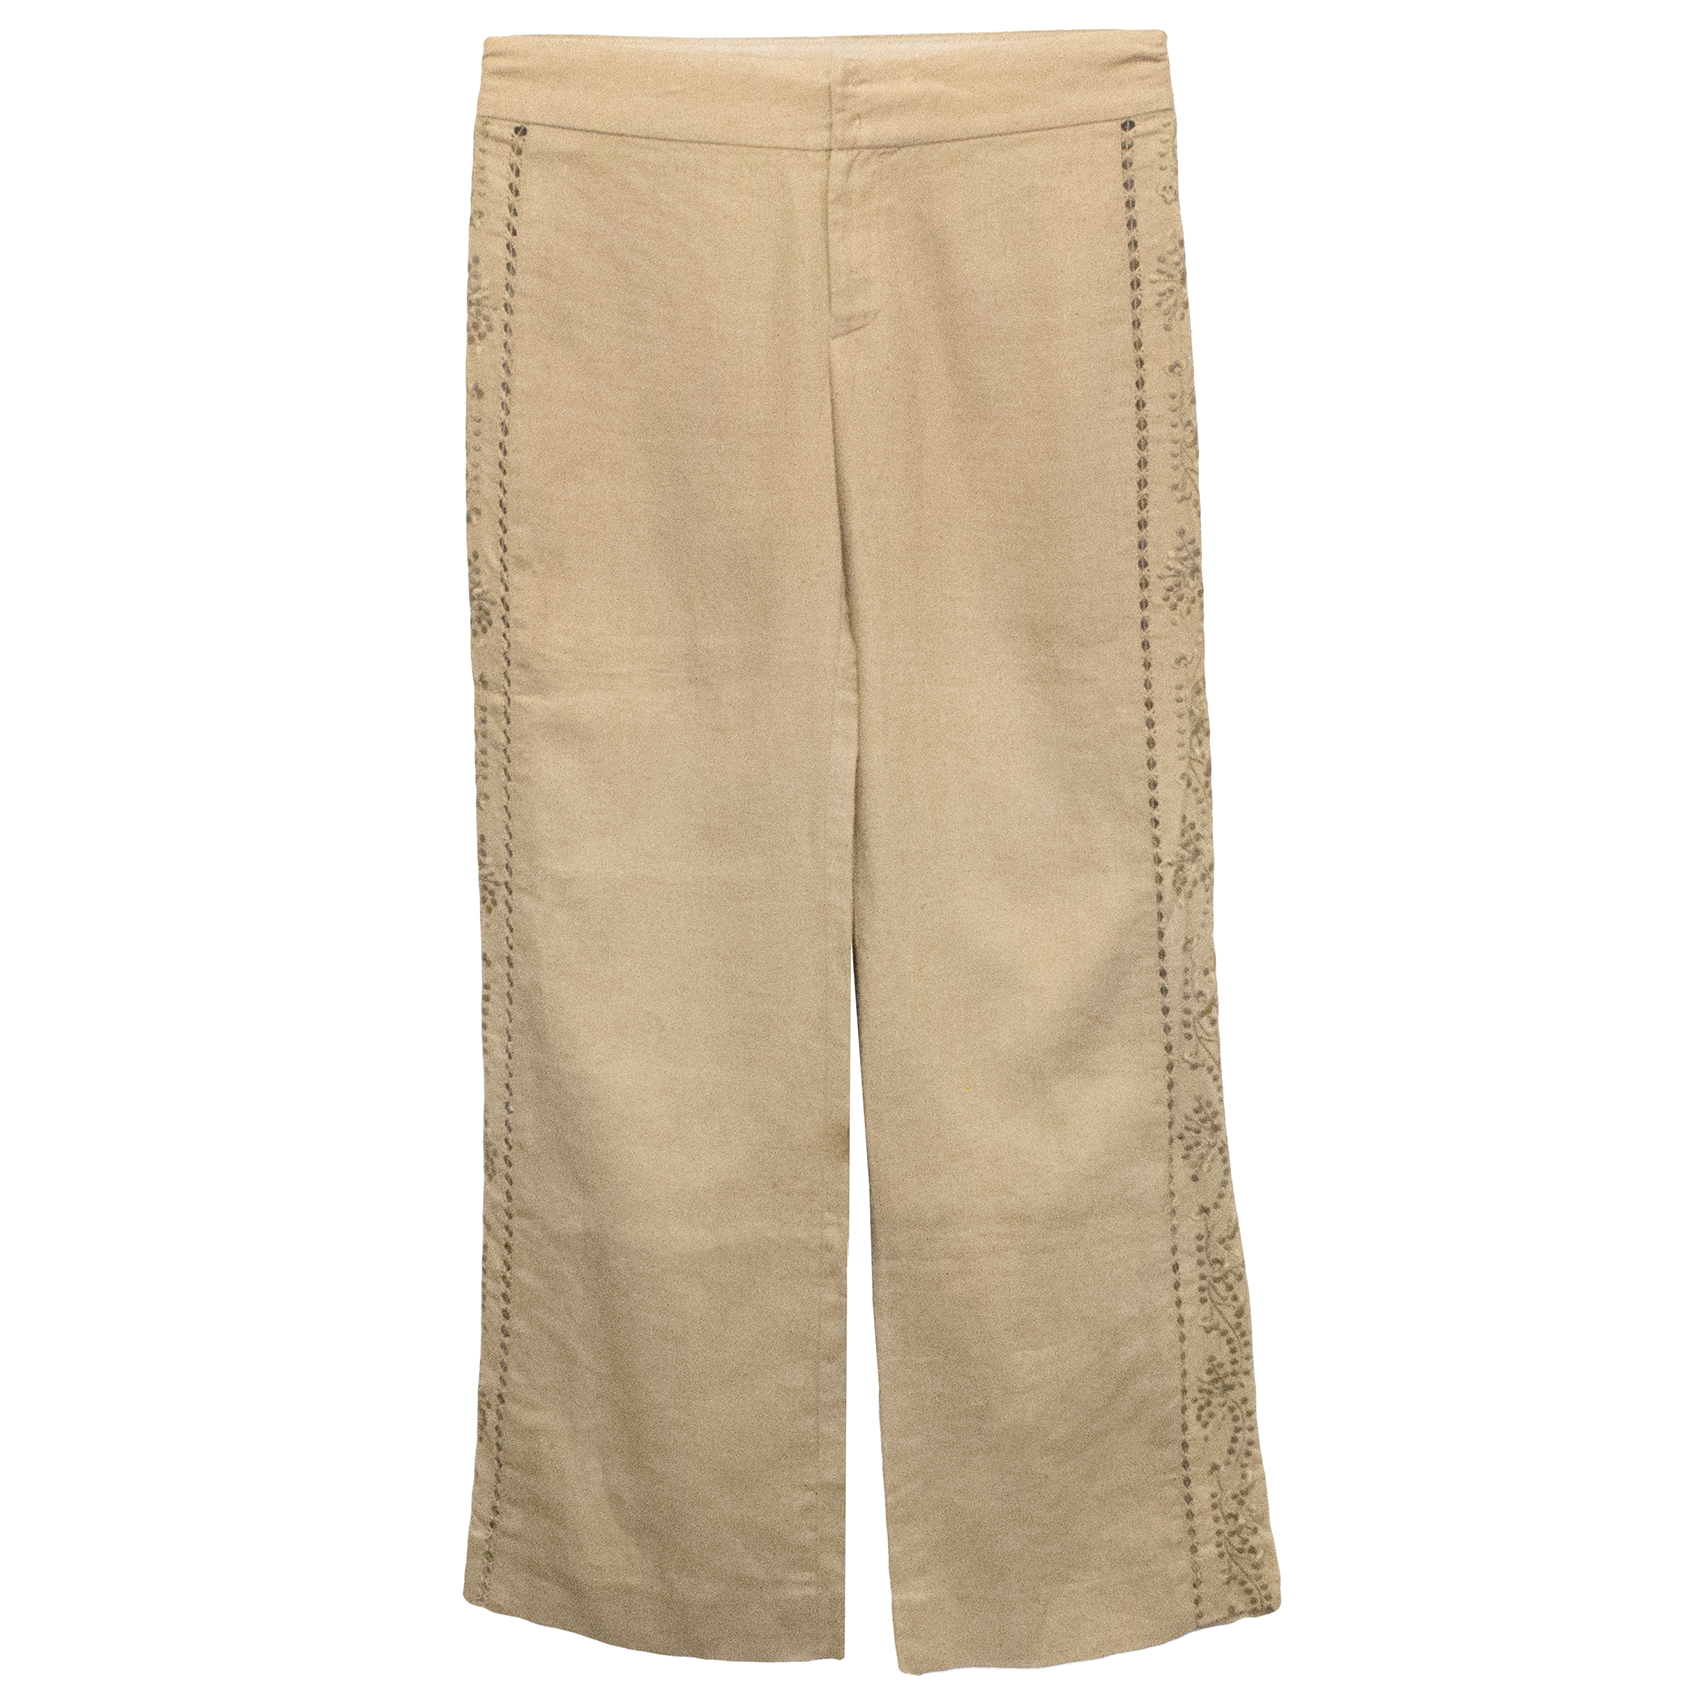 Rebecca Taylor Camel Linen Trousers with Floral Sides